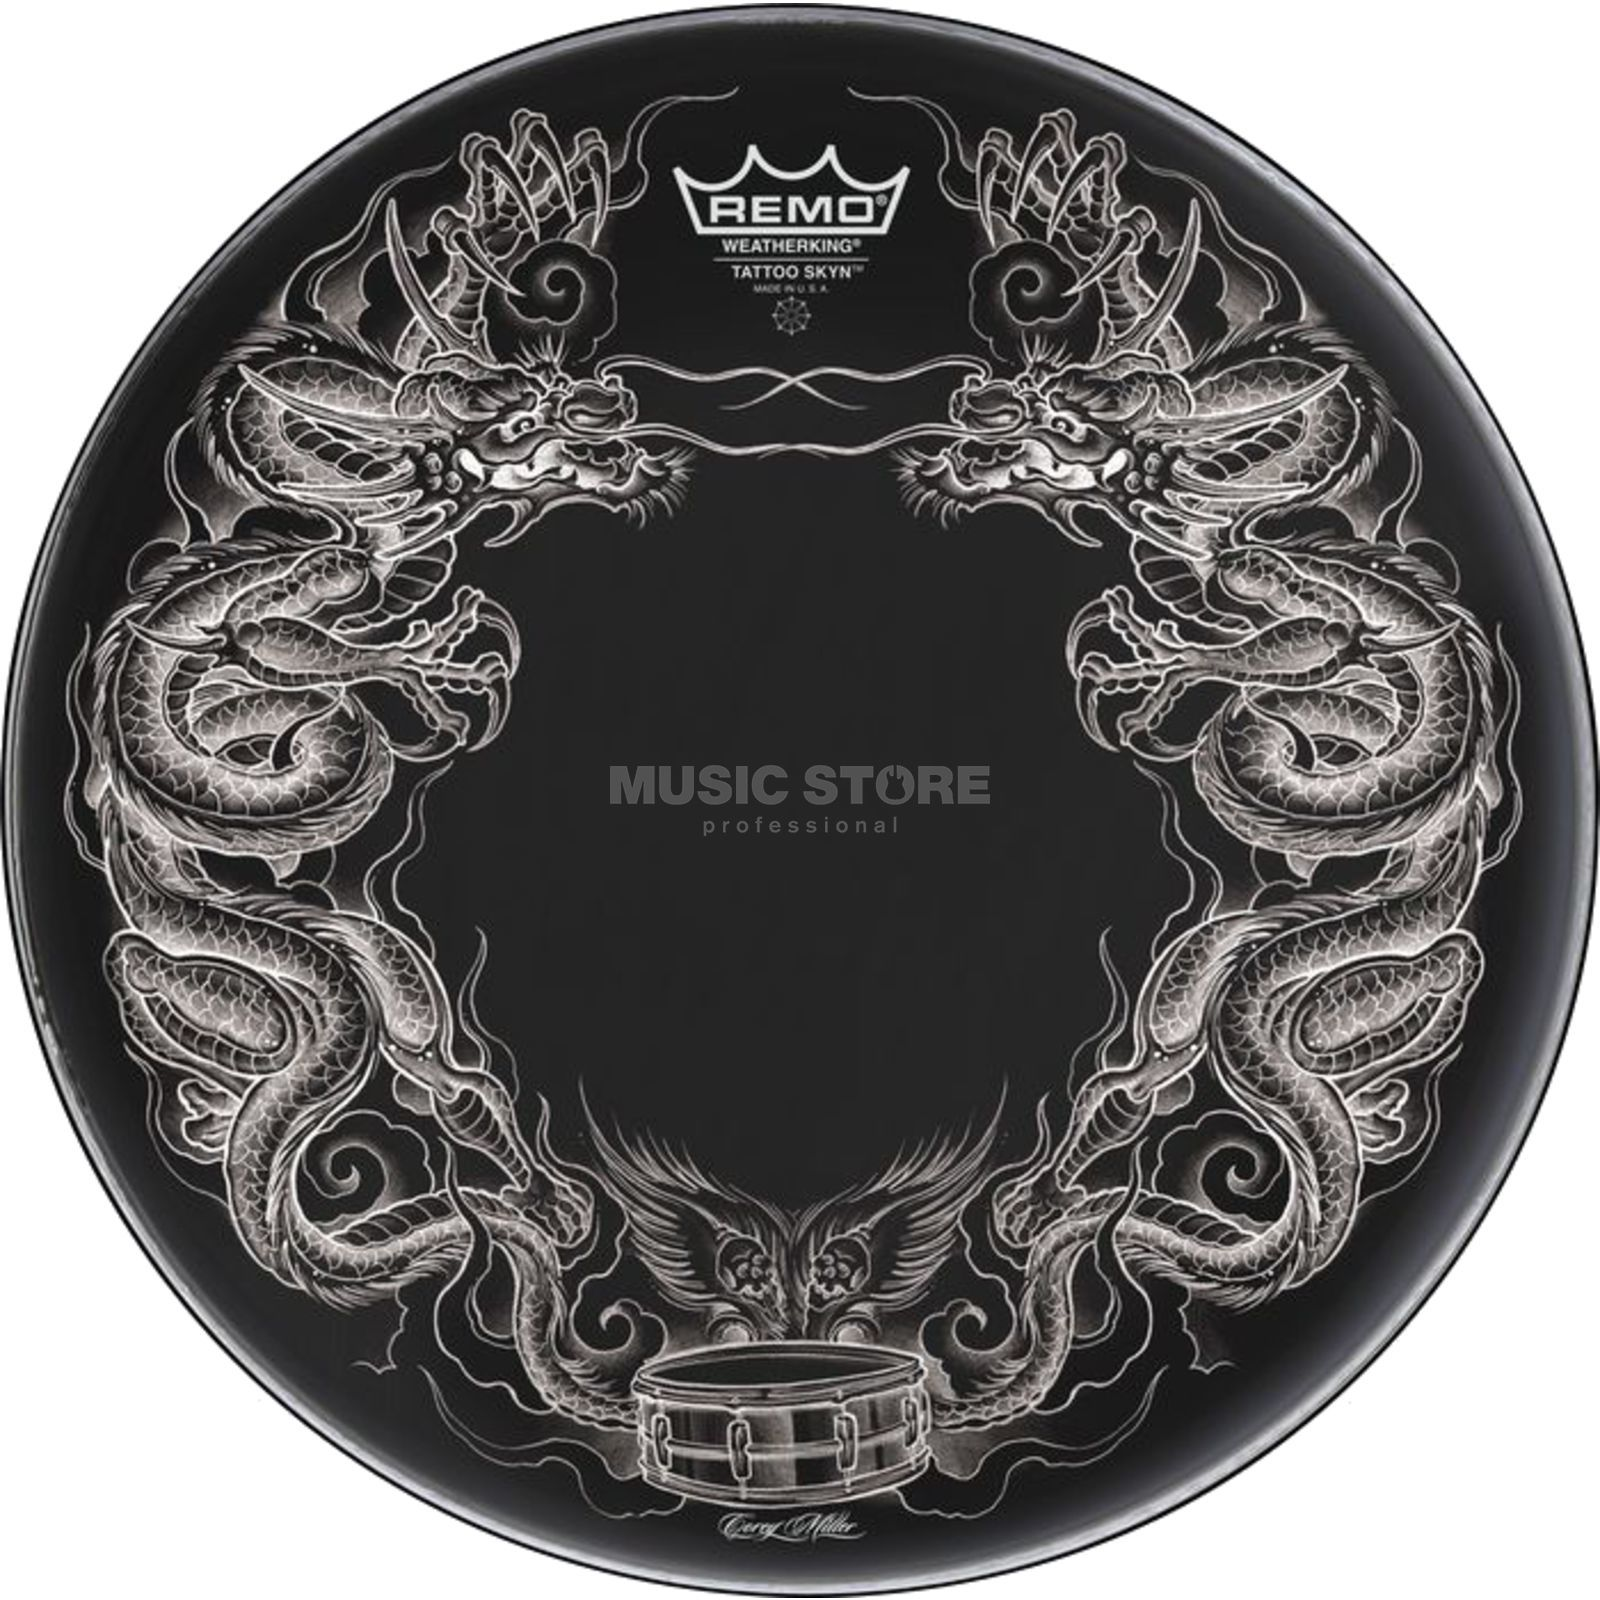 "Remo Tattoo Skyn 22"", Dragon Skyn on black Produktbillede"